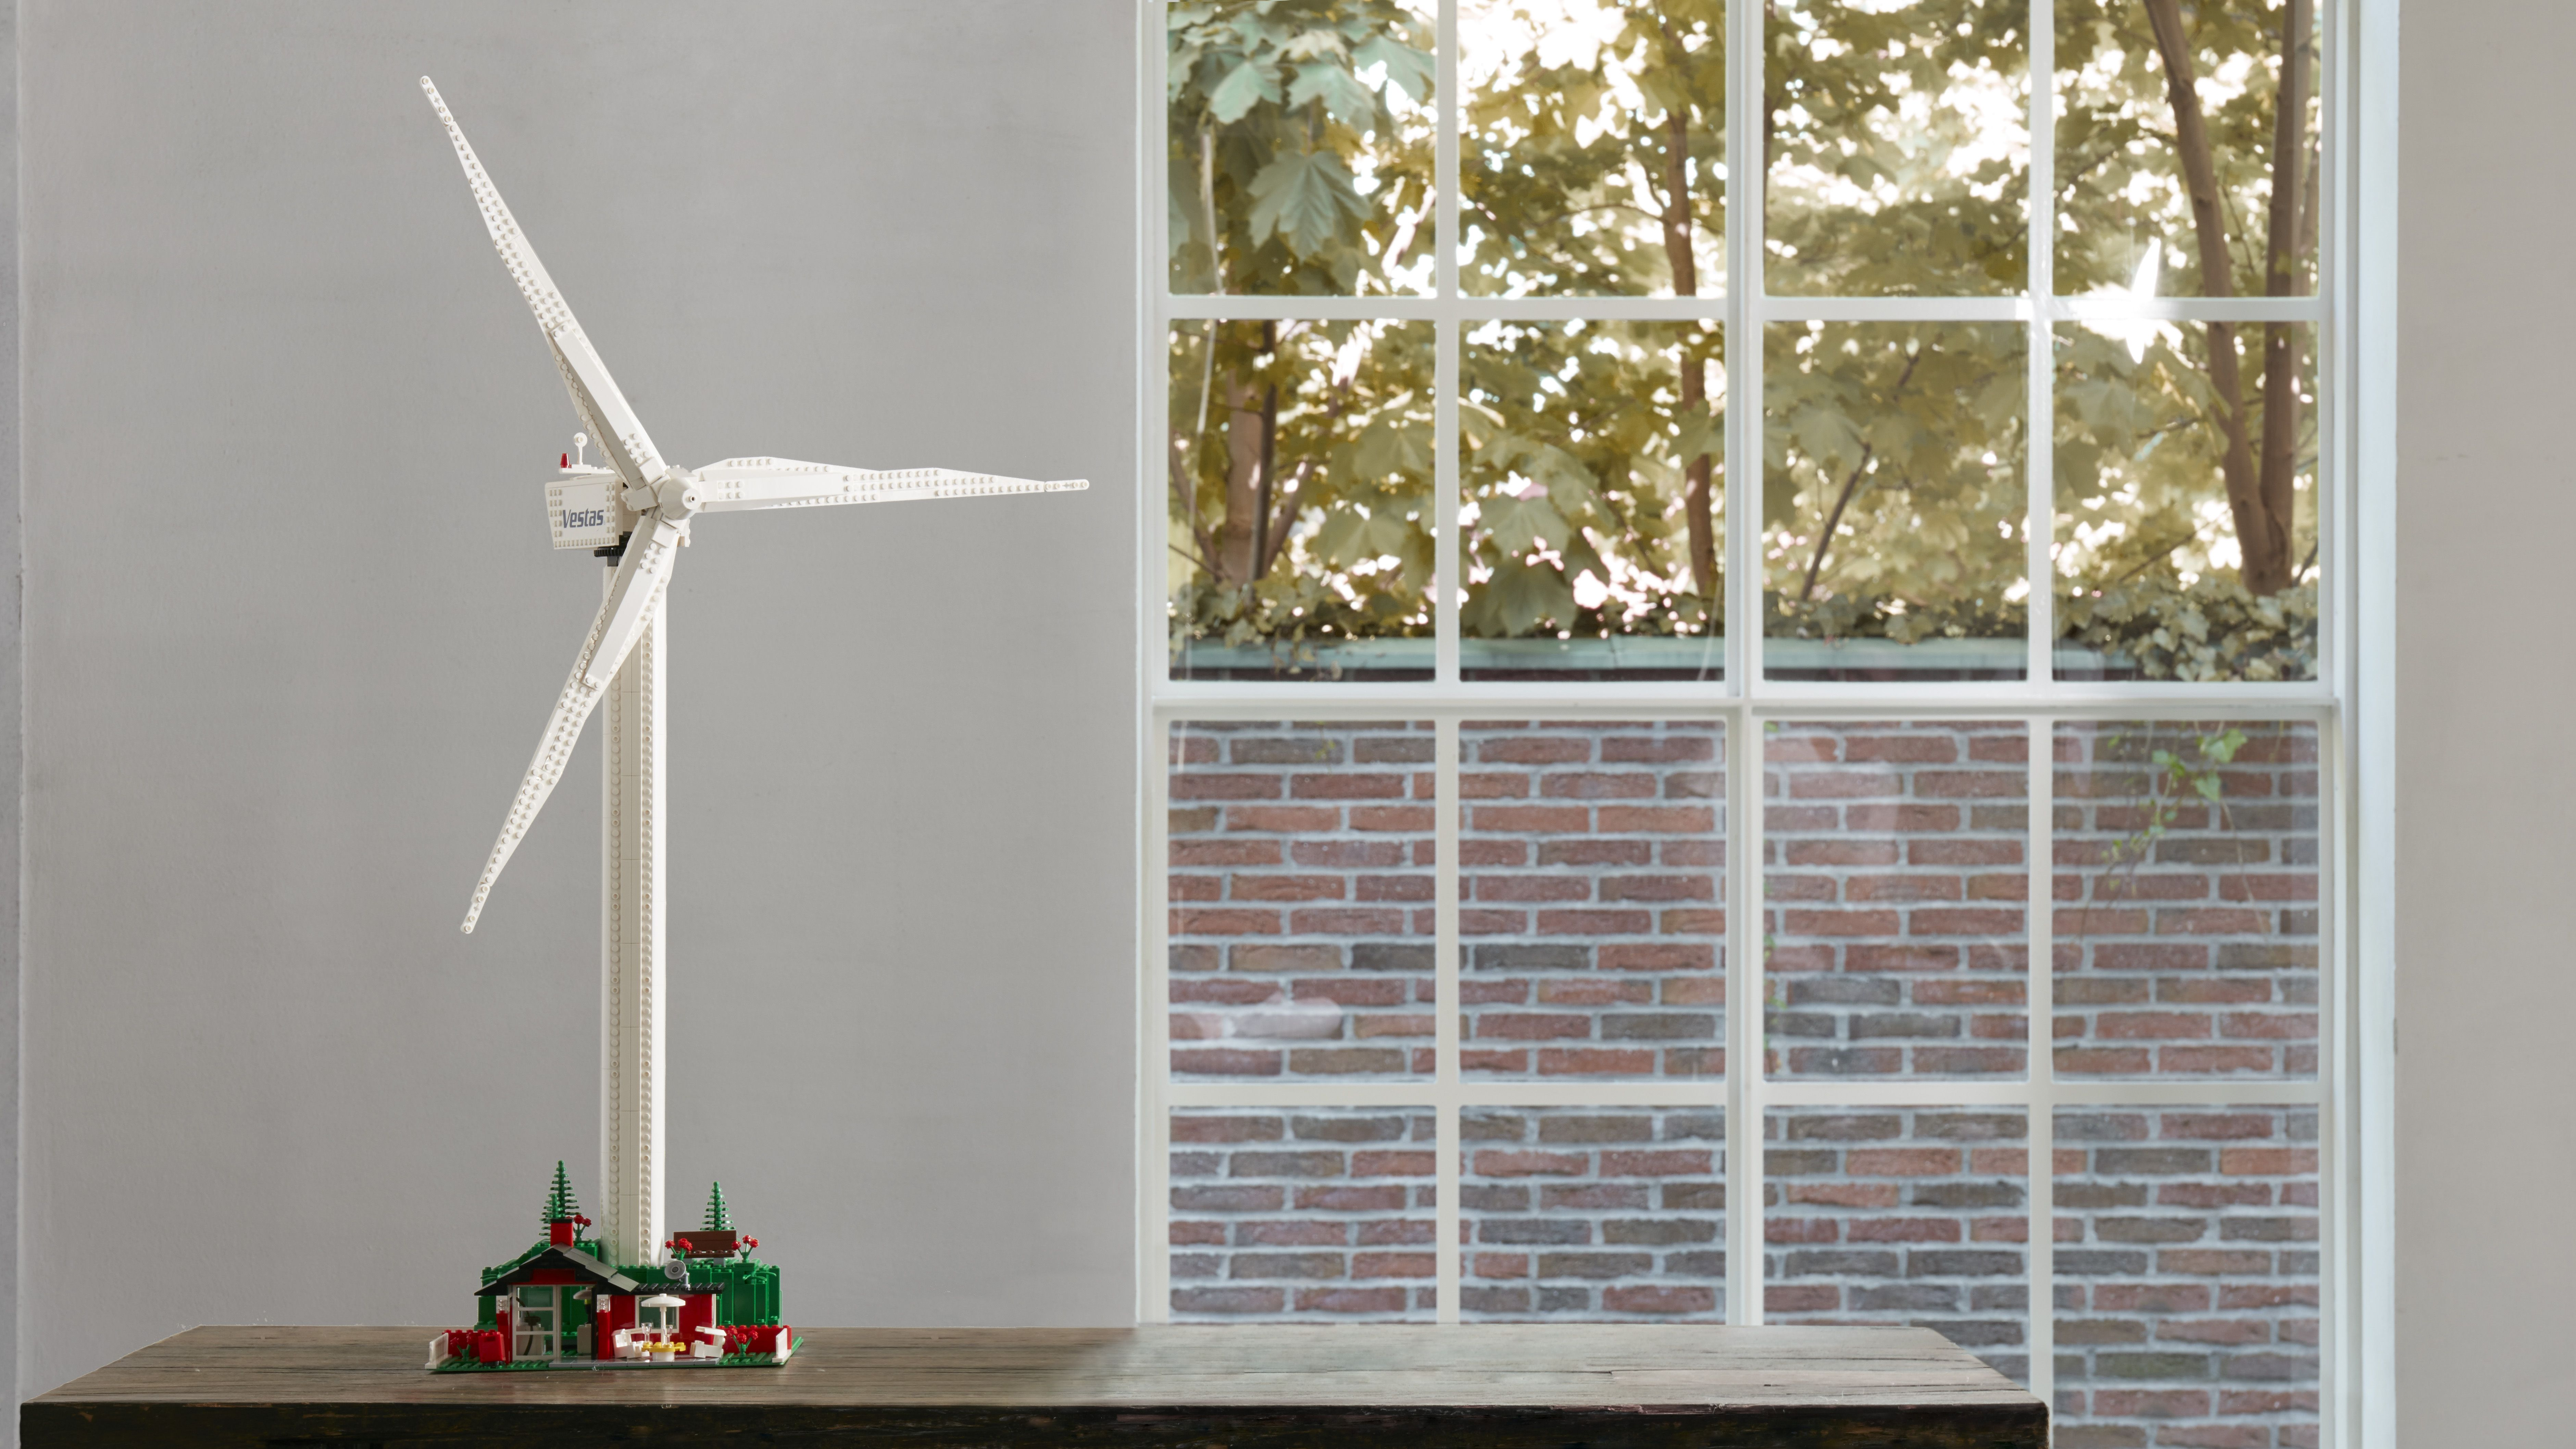 Put Renewable Energy On Your Desk With a Lego Wind Turbine